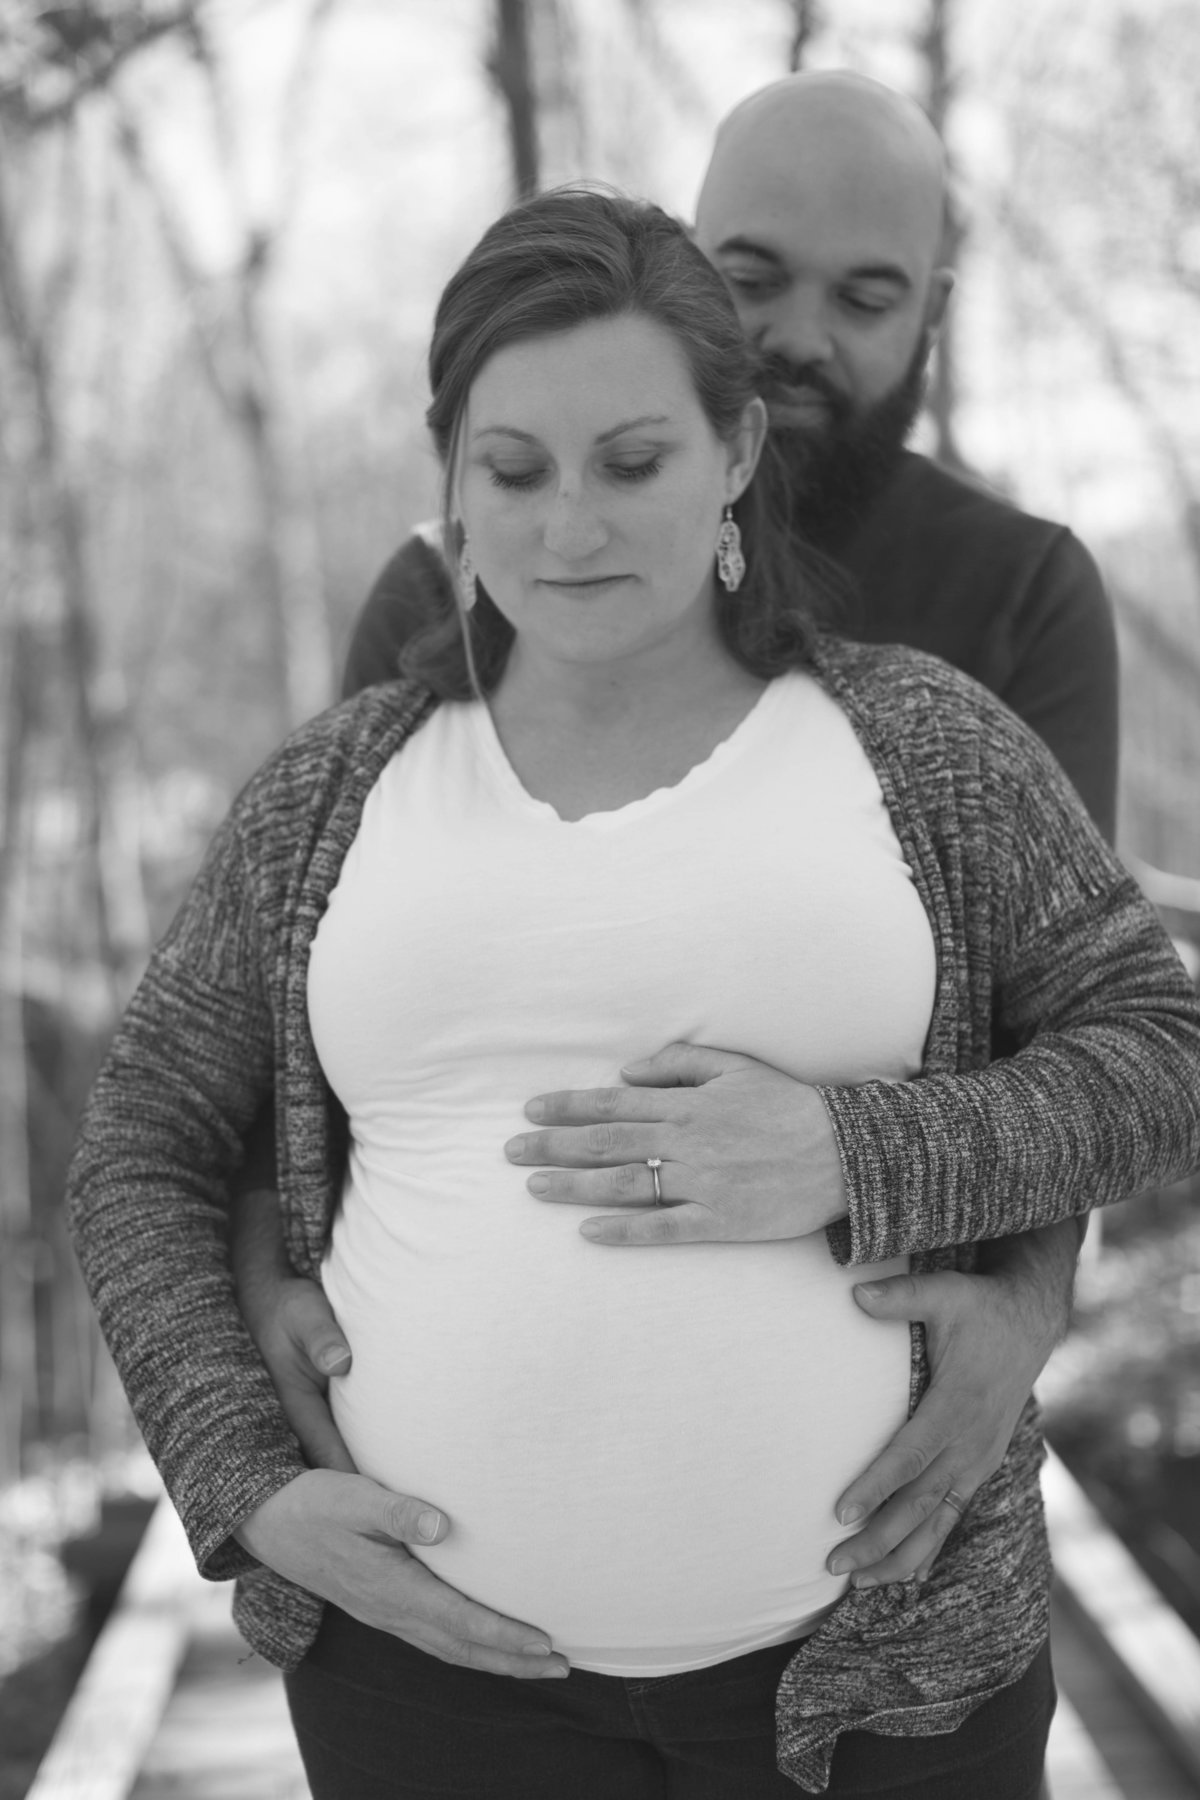 Boston_Lifestyle_maternity_photographer170409_003